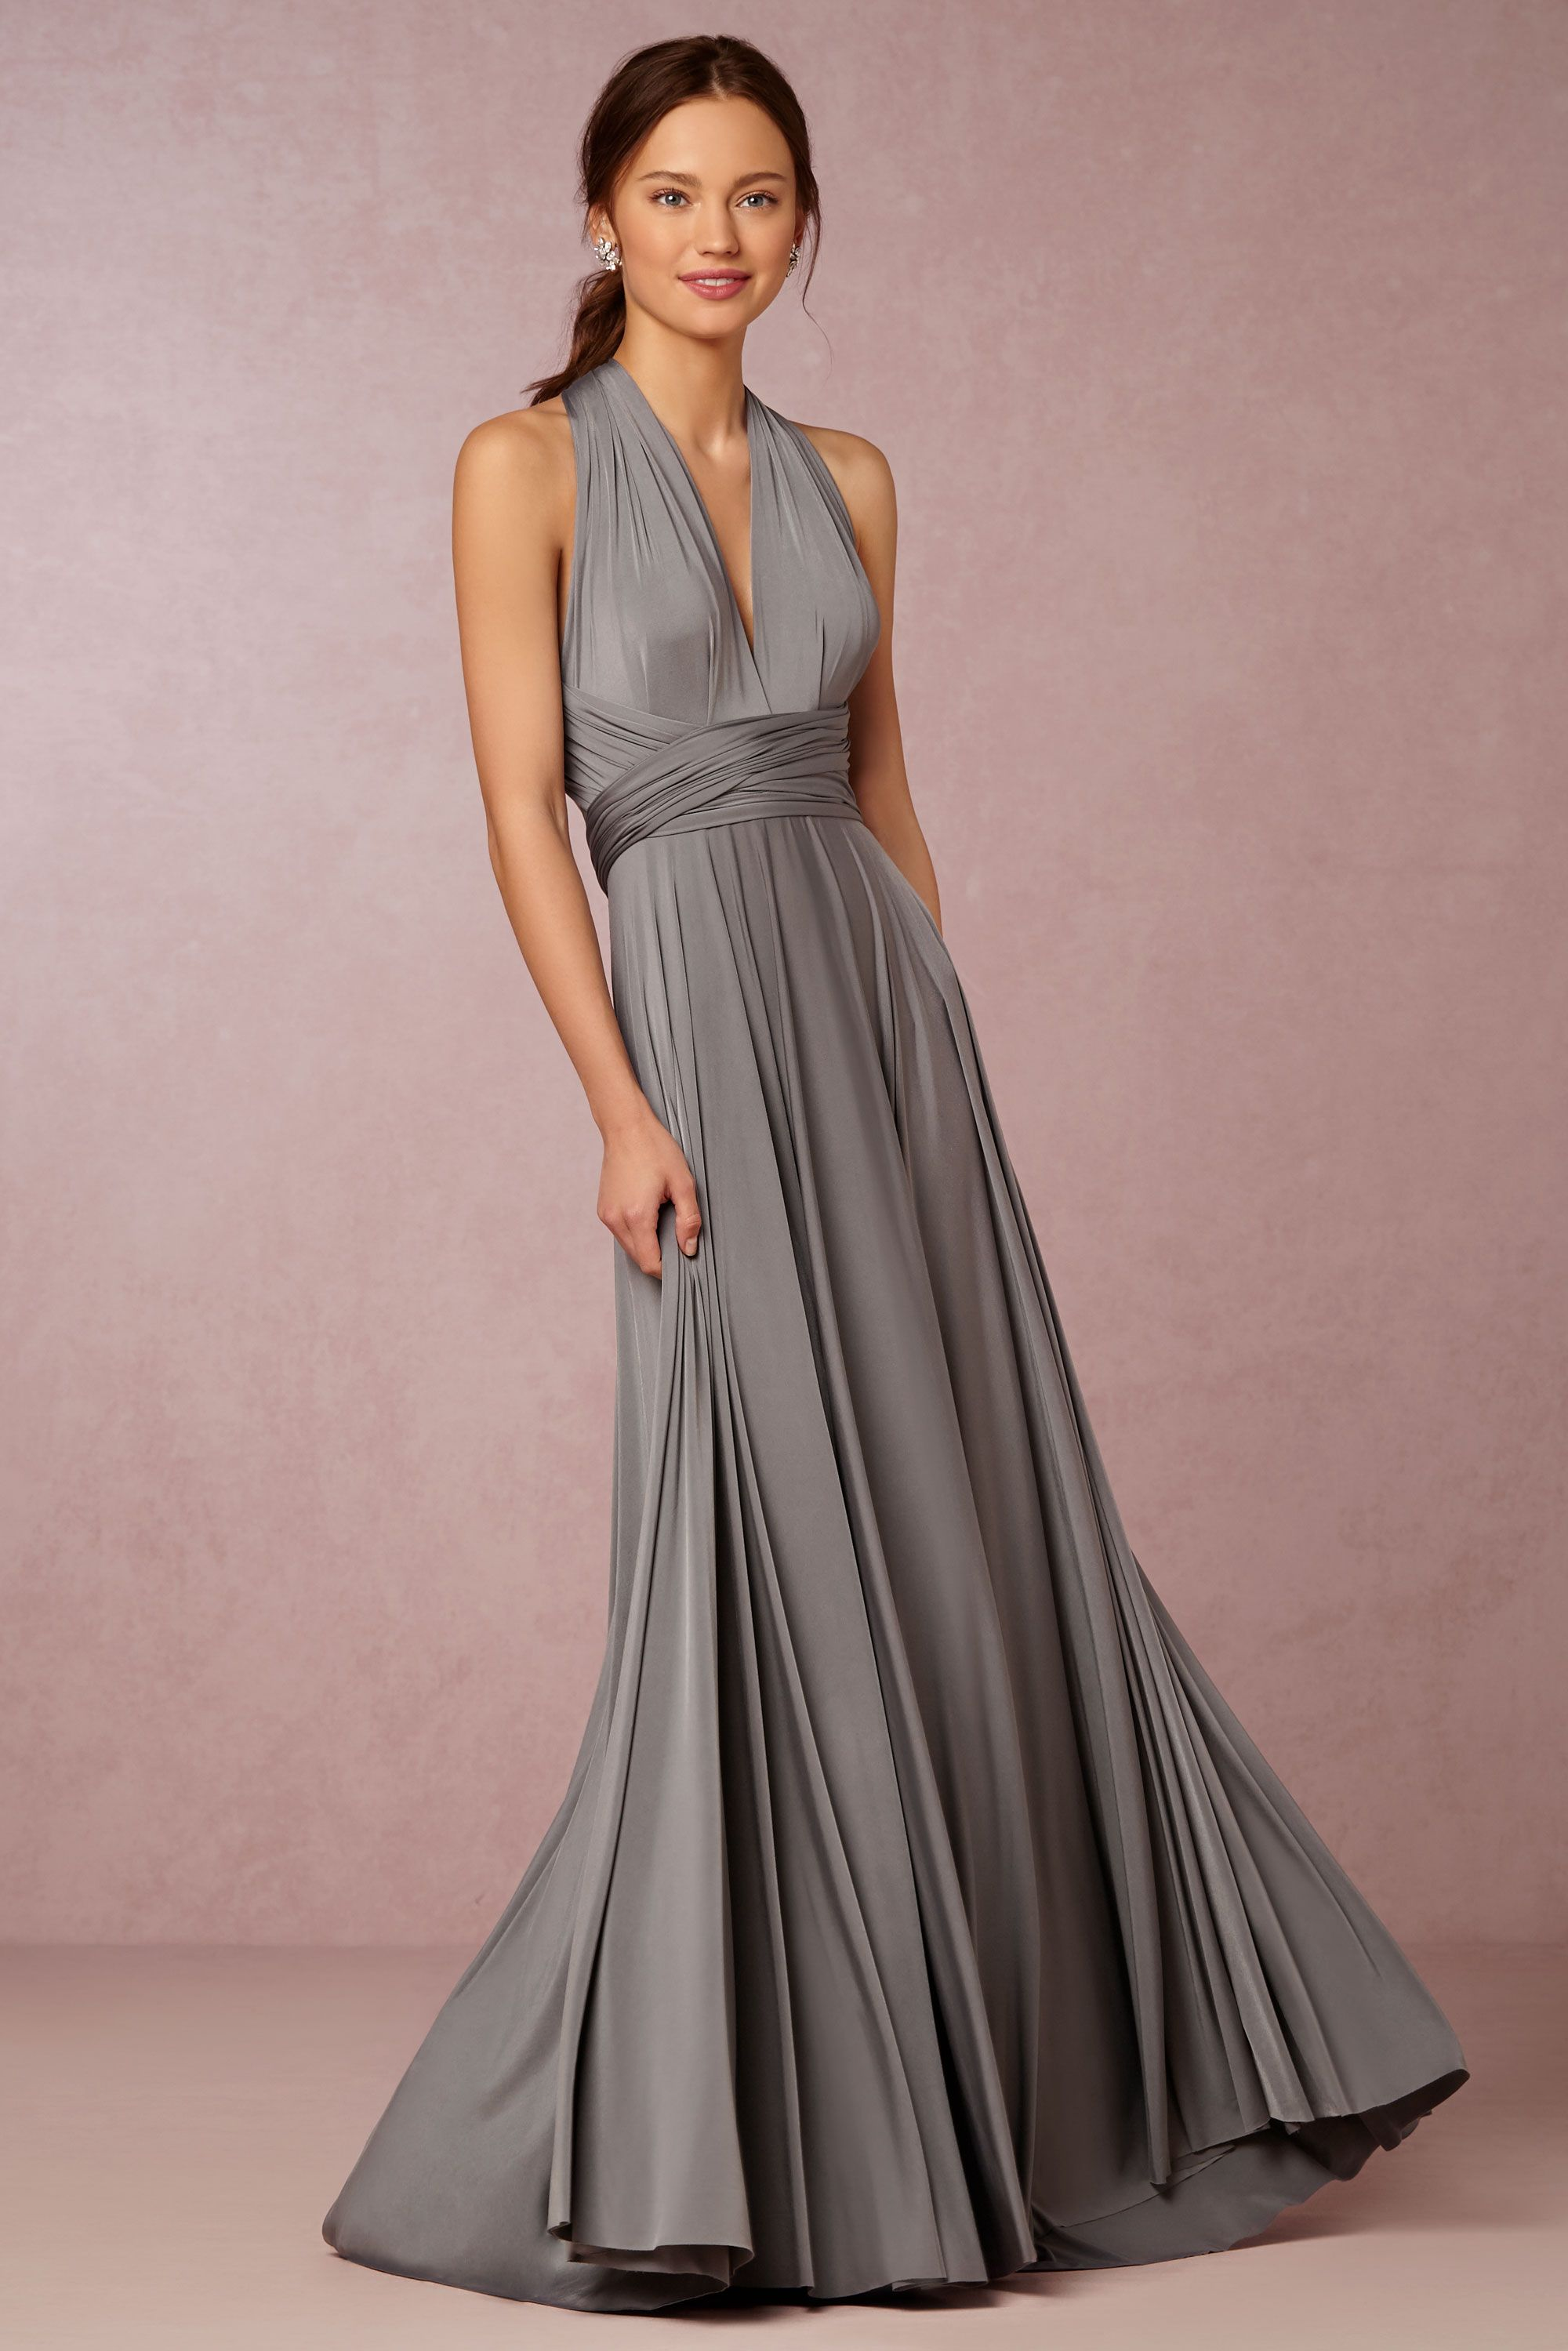 Bridesmaid dresses for spring weddings | via https://emmalinebride.com/bridesmaid/bridesmaid-dresses-spring-weddings/ ‎